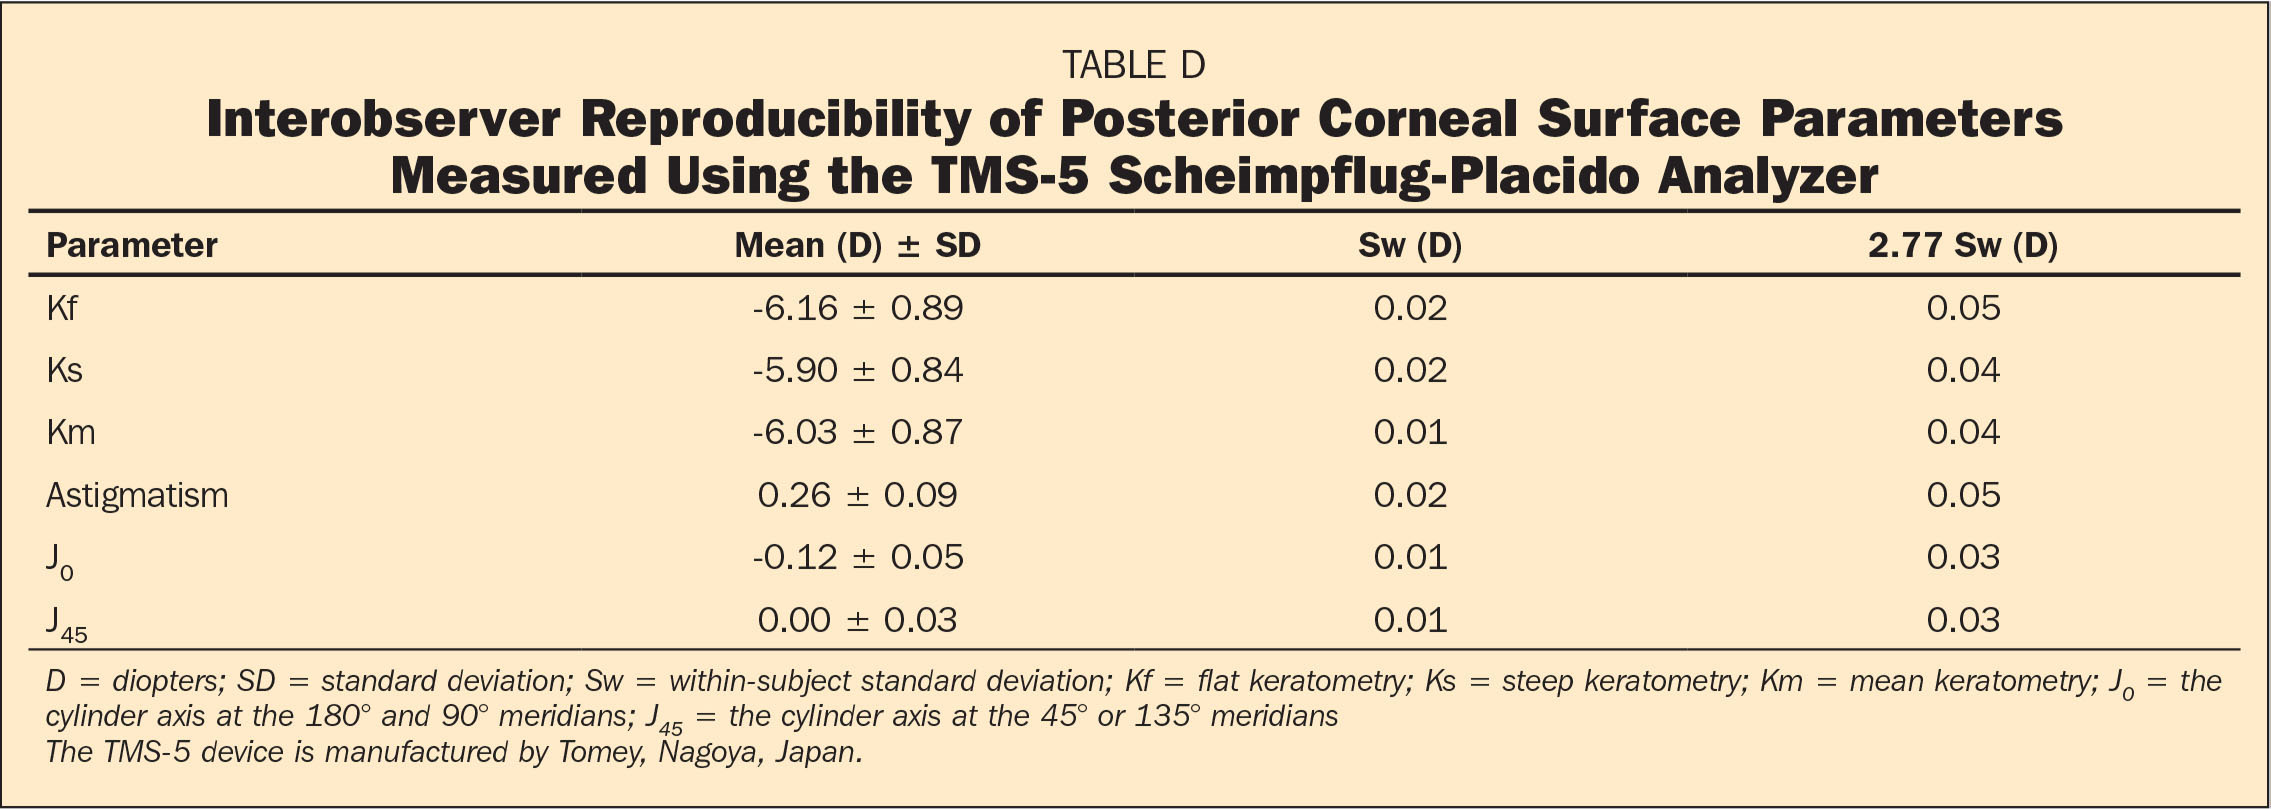 Interobserver Reproducibility of Posterior Corneal Surface Parameters Measured Using the TMS-5 Scheimpflug-Placido Analyzer